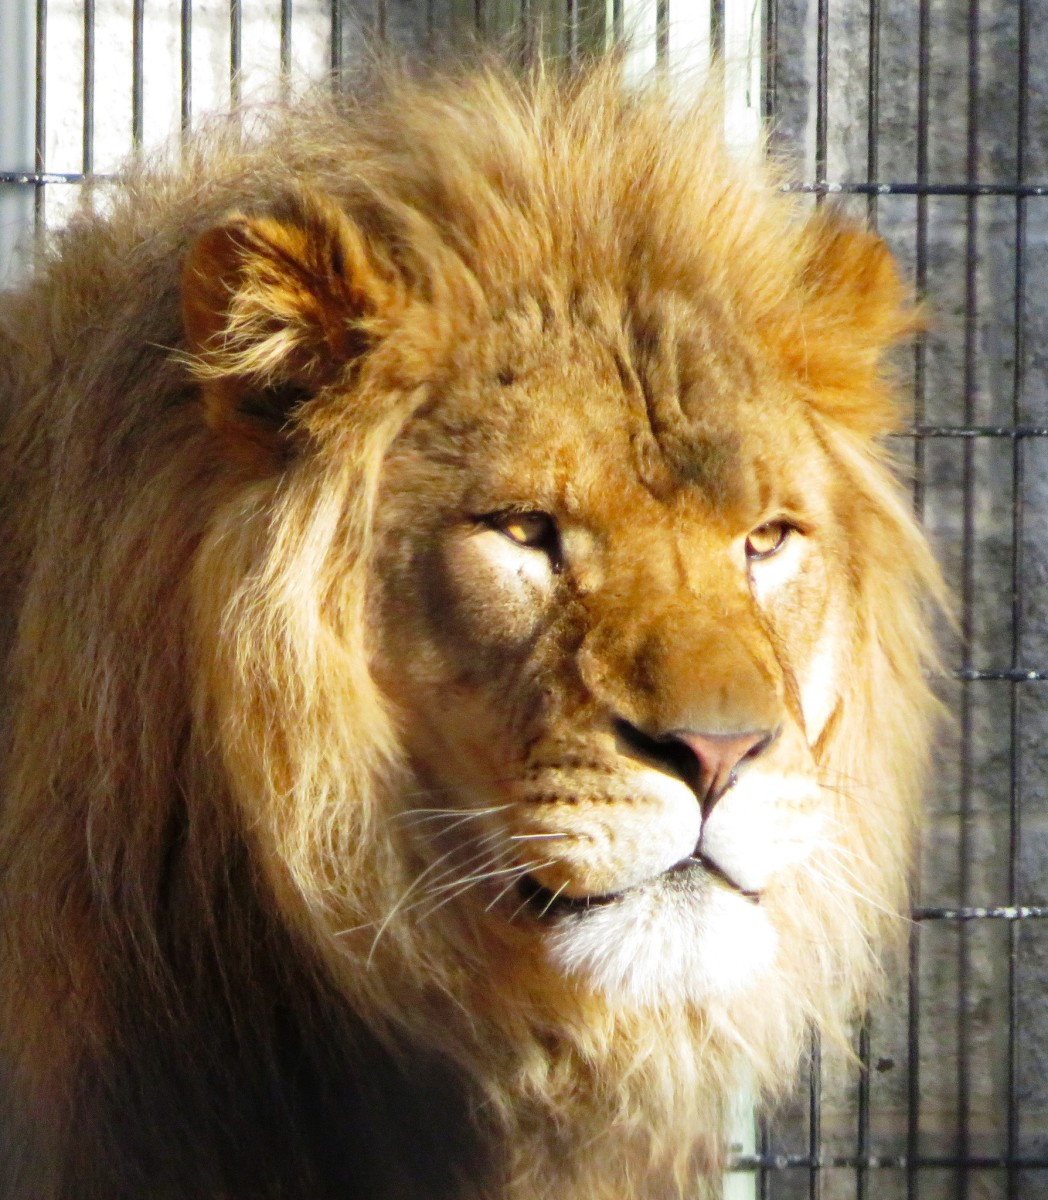 Lion at NEW Zoo in Green Bay, Wisconsin